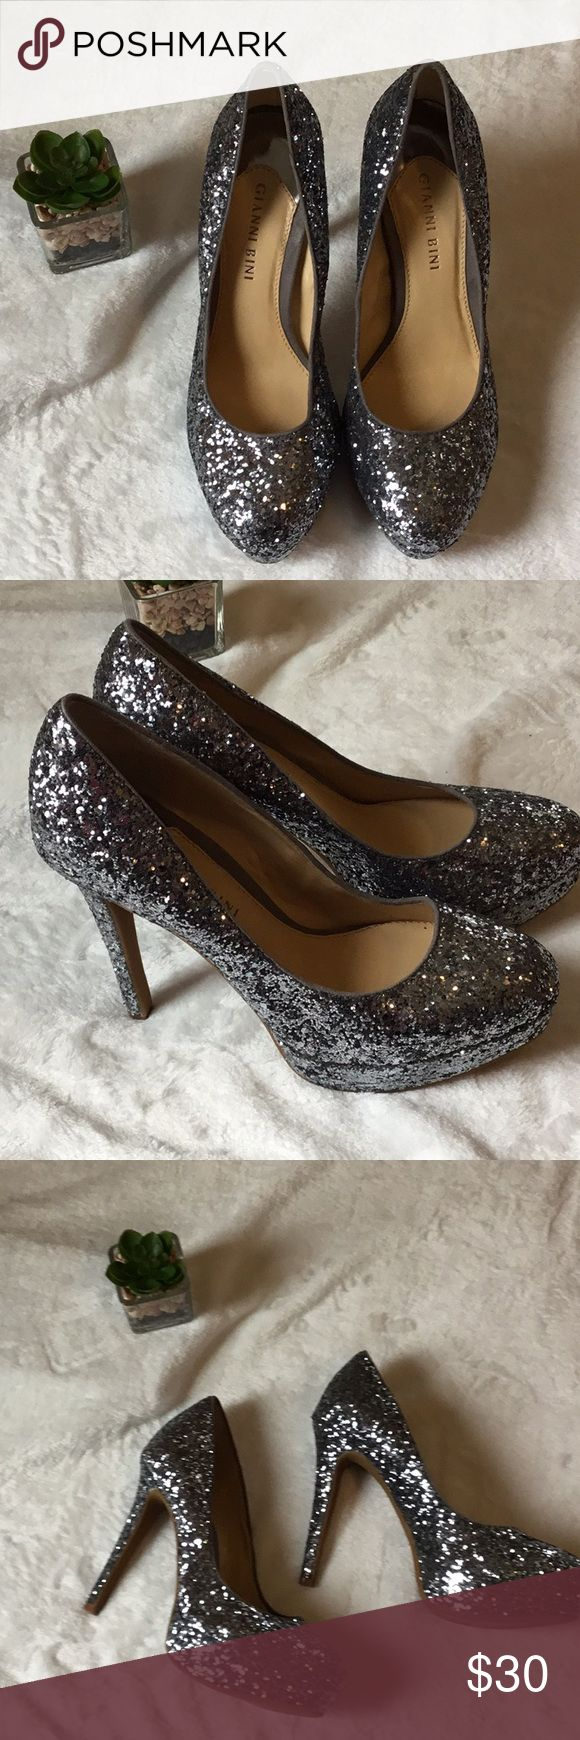 "Gianni Binni Silver Glitter High Heel Shoes 7M Gorgeous High Heel Approx 4"" Glitter Silver Shoes Women Size 7M Barely Worn Great Conditions. Gianni Bini Shoes Heels"